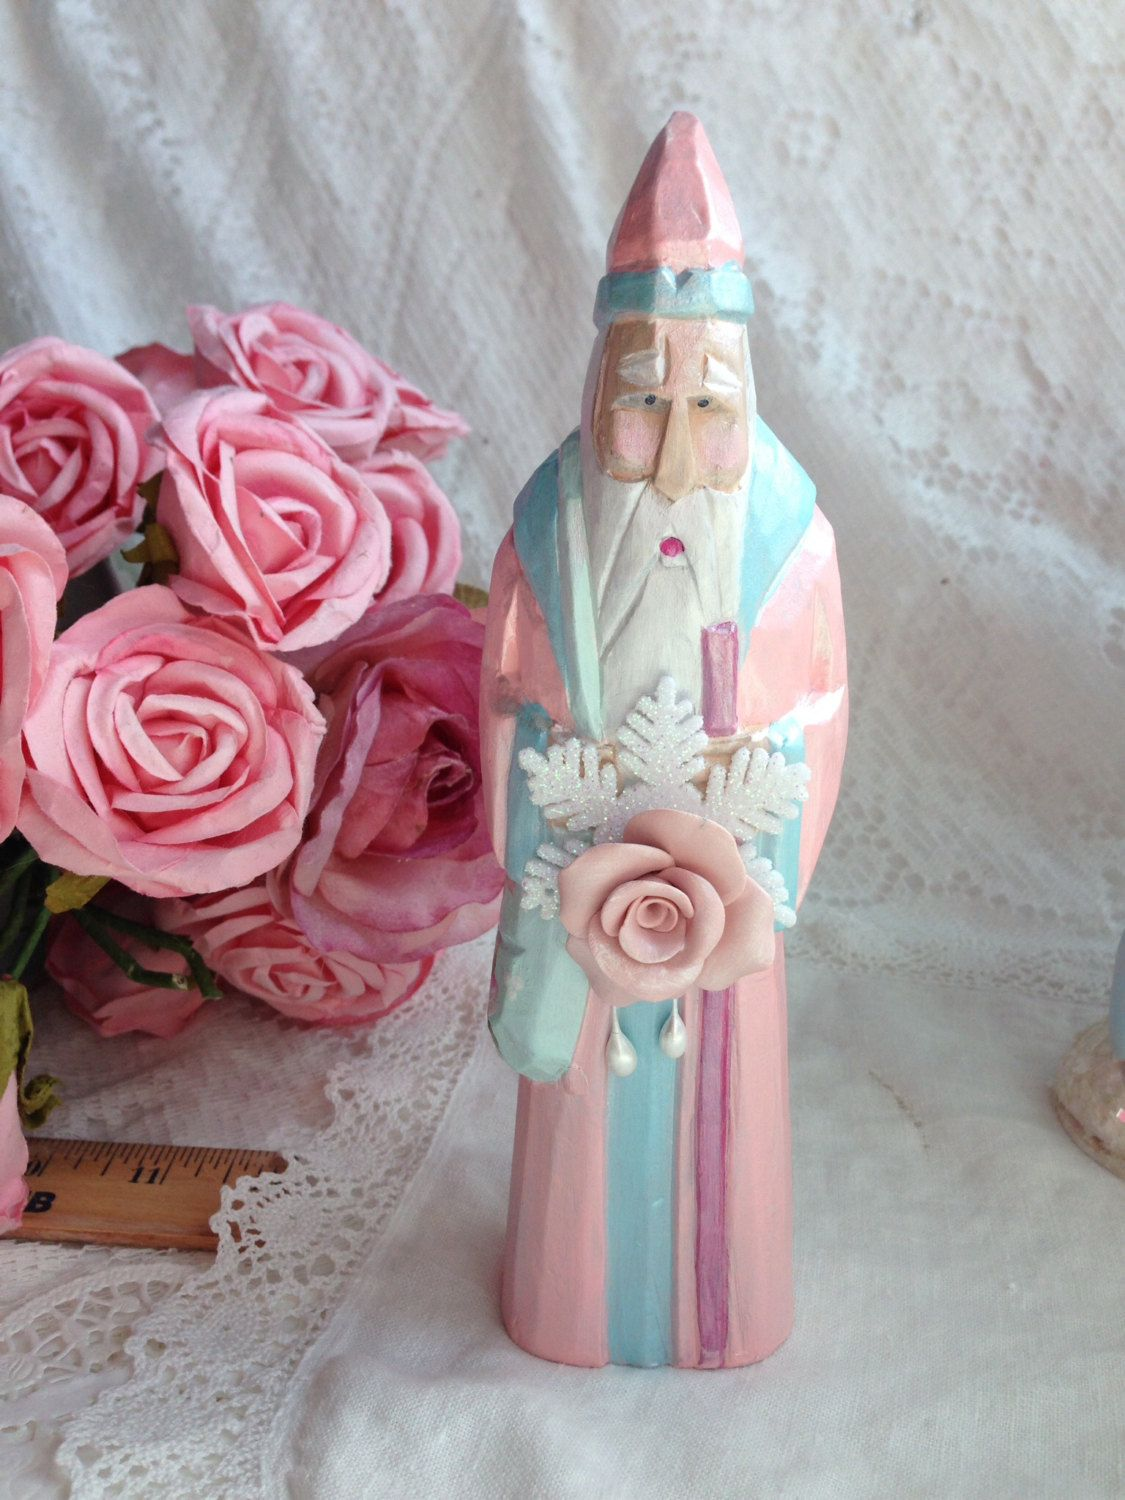 """PInk 8"""" SANTA Claus St. Nick Carved Wood Shabby Chic Christmas Hand Painted RosesECS sct schteam SVFTeam by RoseChicFriends on Etsy https://www.etsy.com/listing/204149539/pink-8-santa-claus-st-nick-carved-wood"""